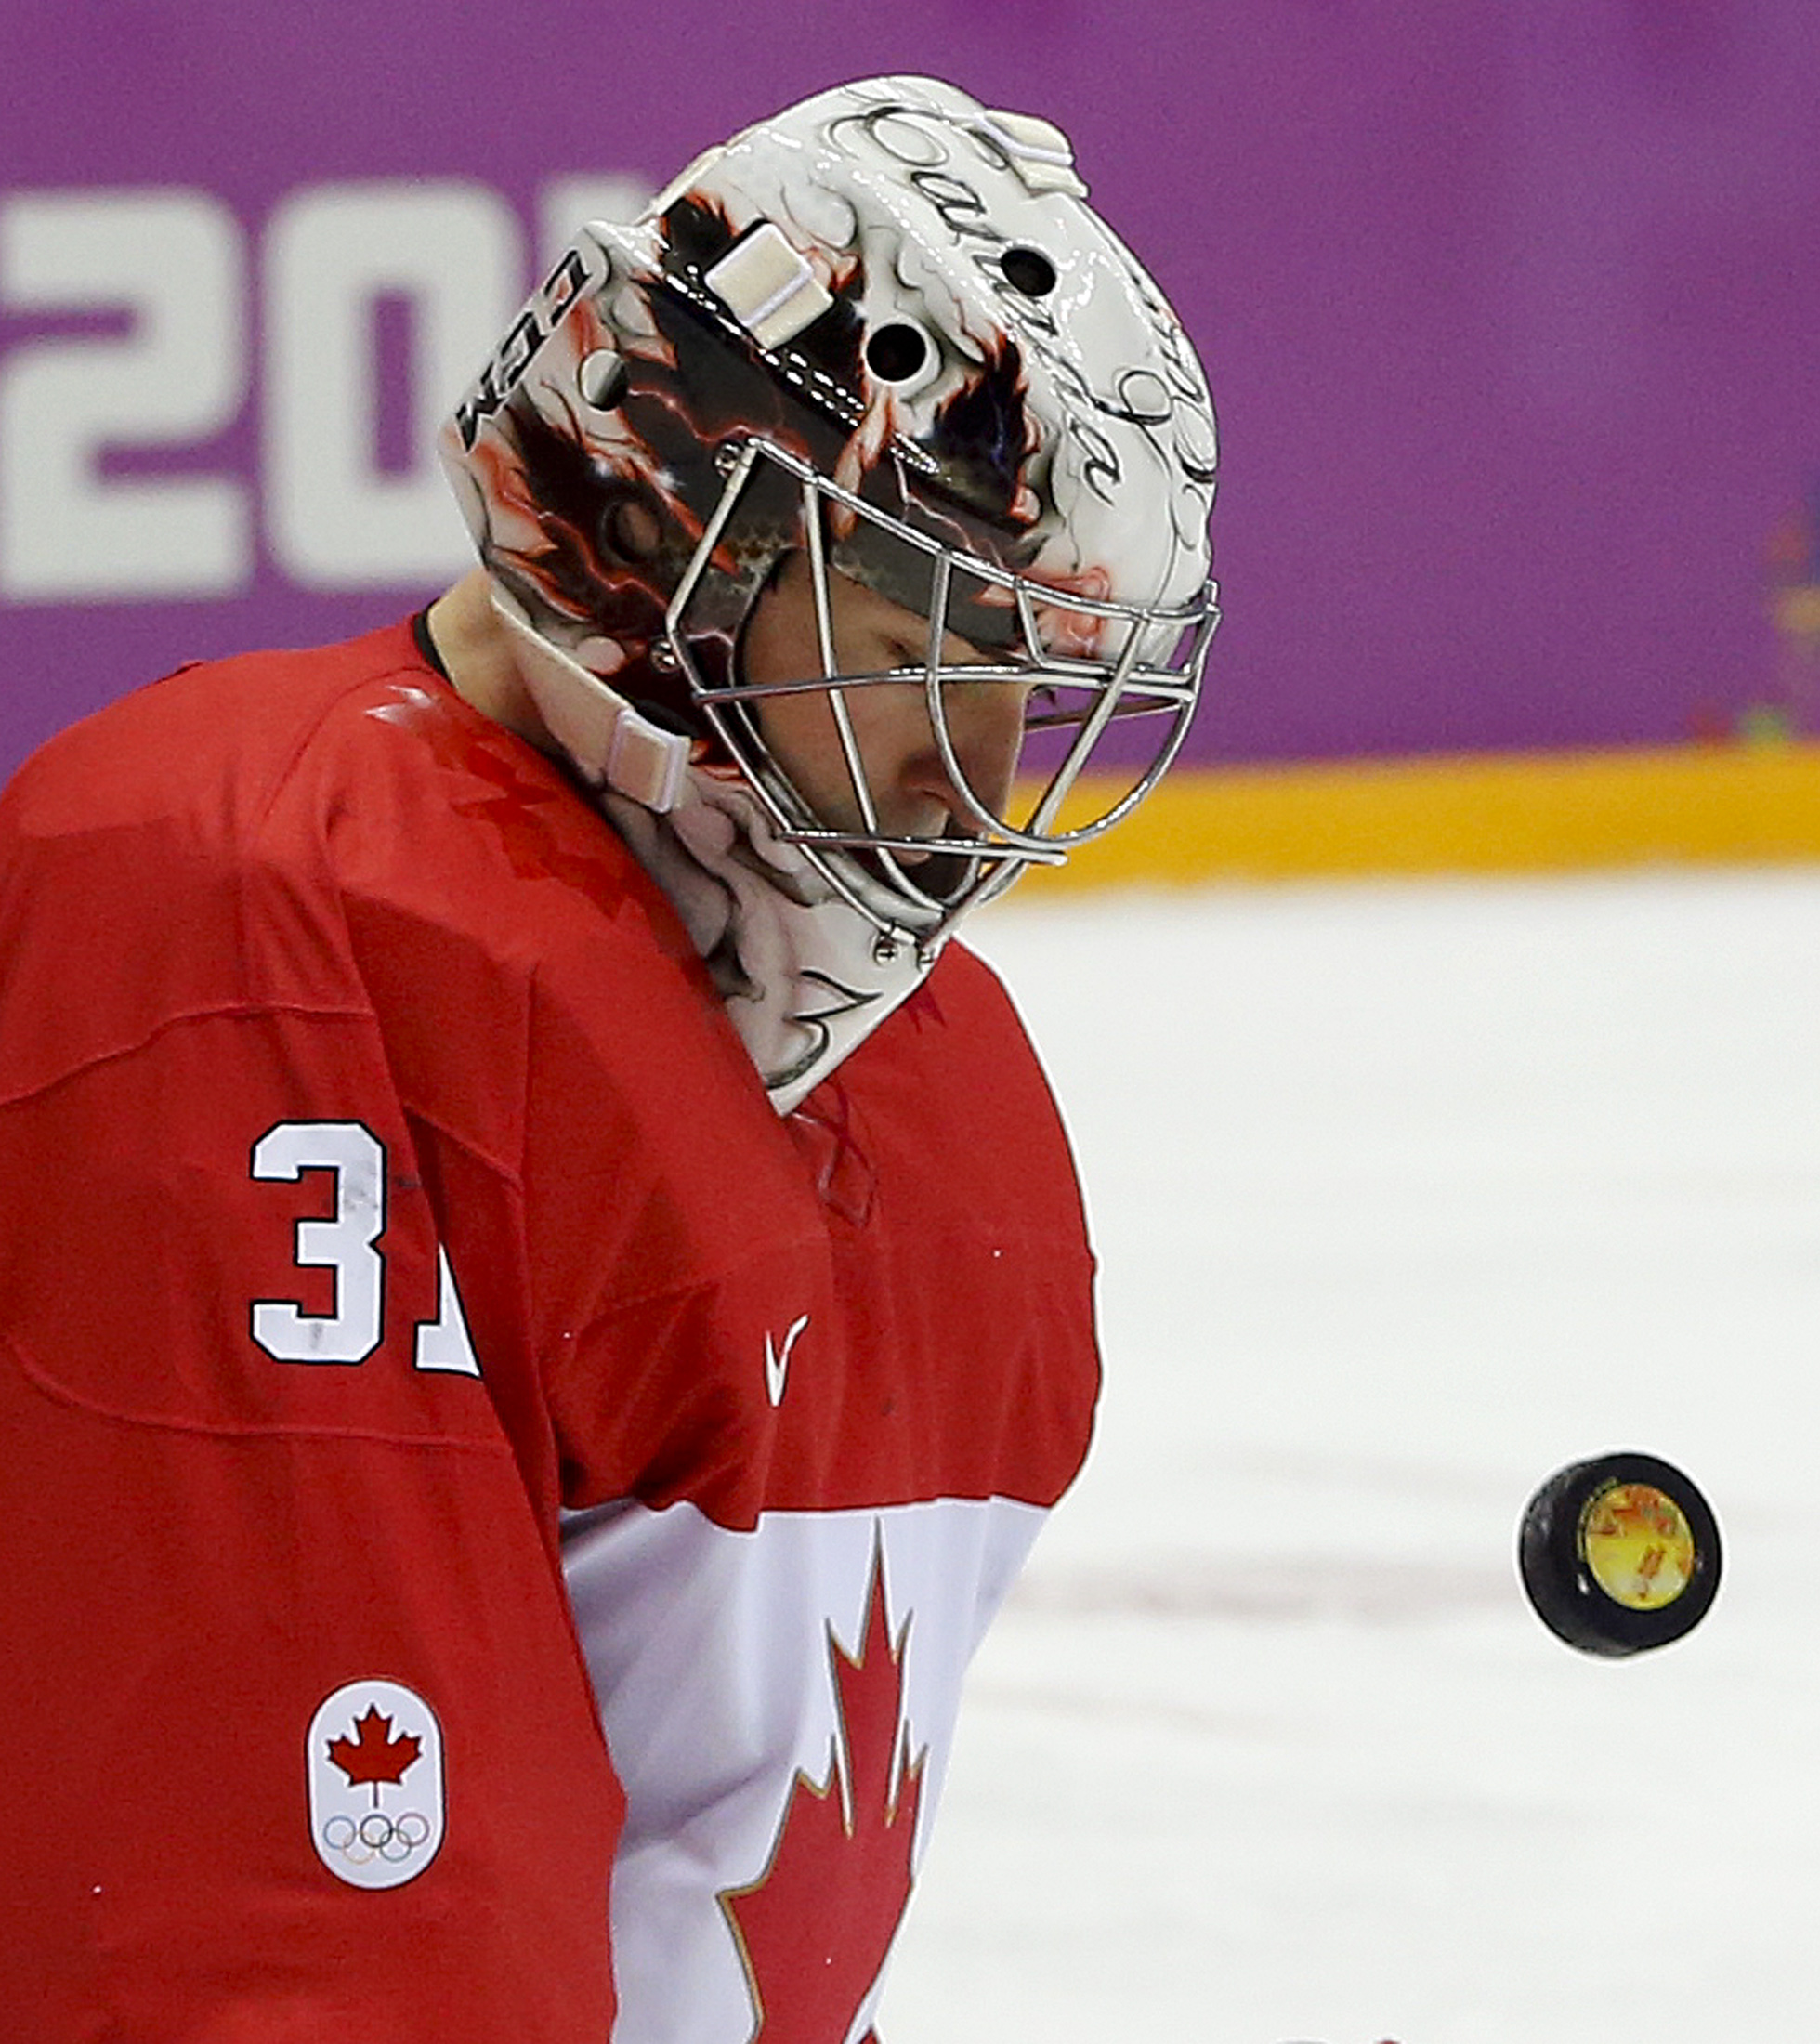 Canada goaltender Carey Price blocks a shot by Sweden during the first period of the men's gold medal ice hockey game at the 2014 Winter Olympics, Sunday, Feb. 23, 2014, in Sochi, Russia. (AP Photo/Julio Cortez)